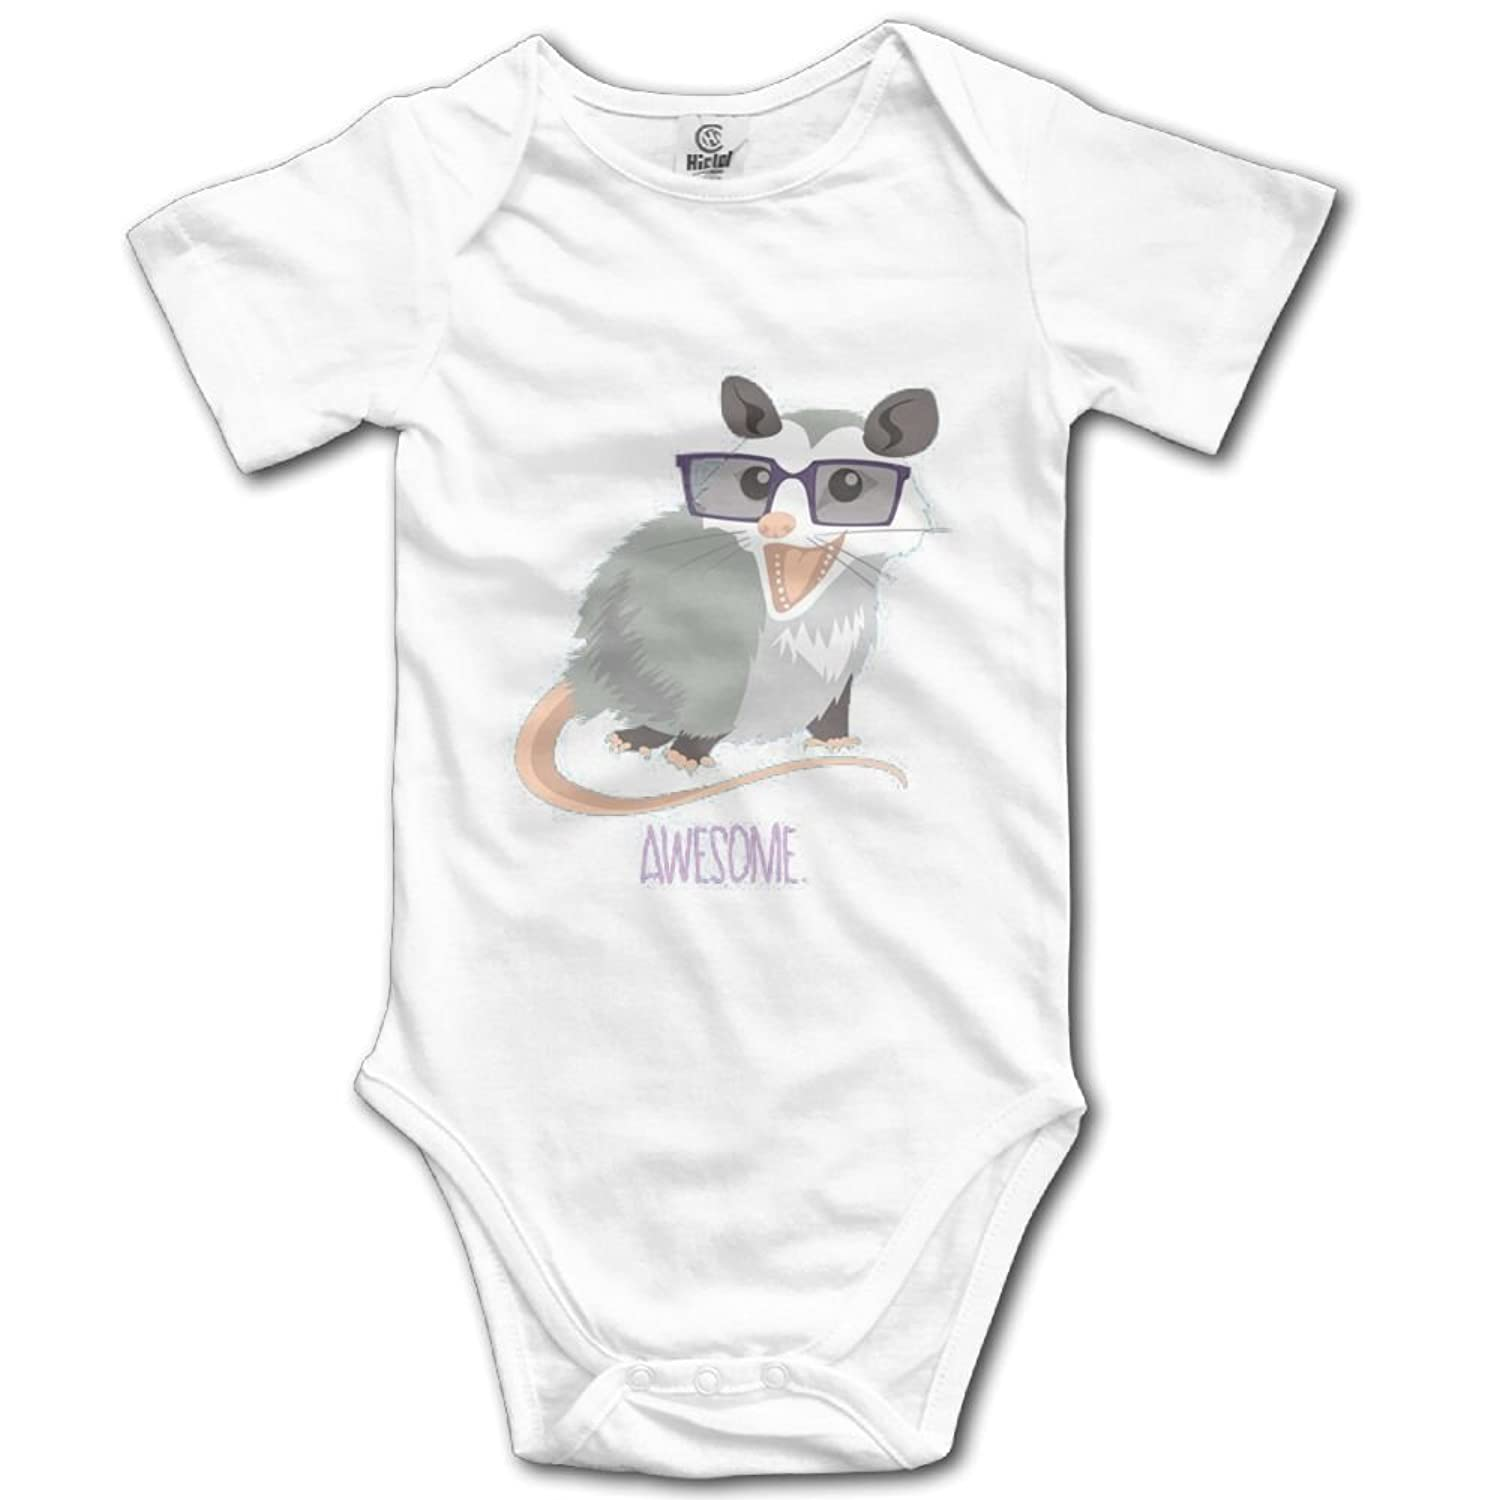 18703685d4e Rainbowhug awesome opossum unisex baby onesie cartoon newborn clothes  concise baby outfits comfortable baby clothes jpg